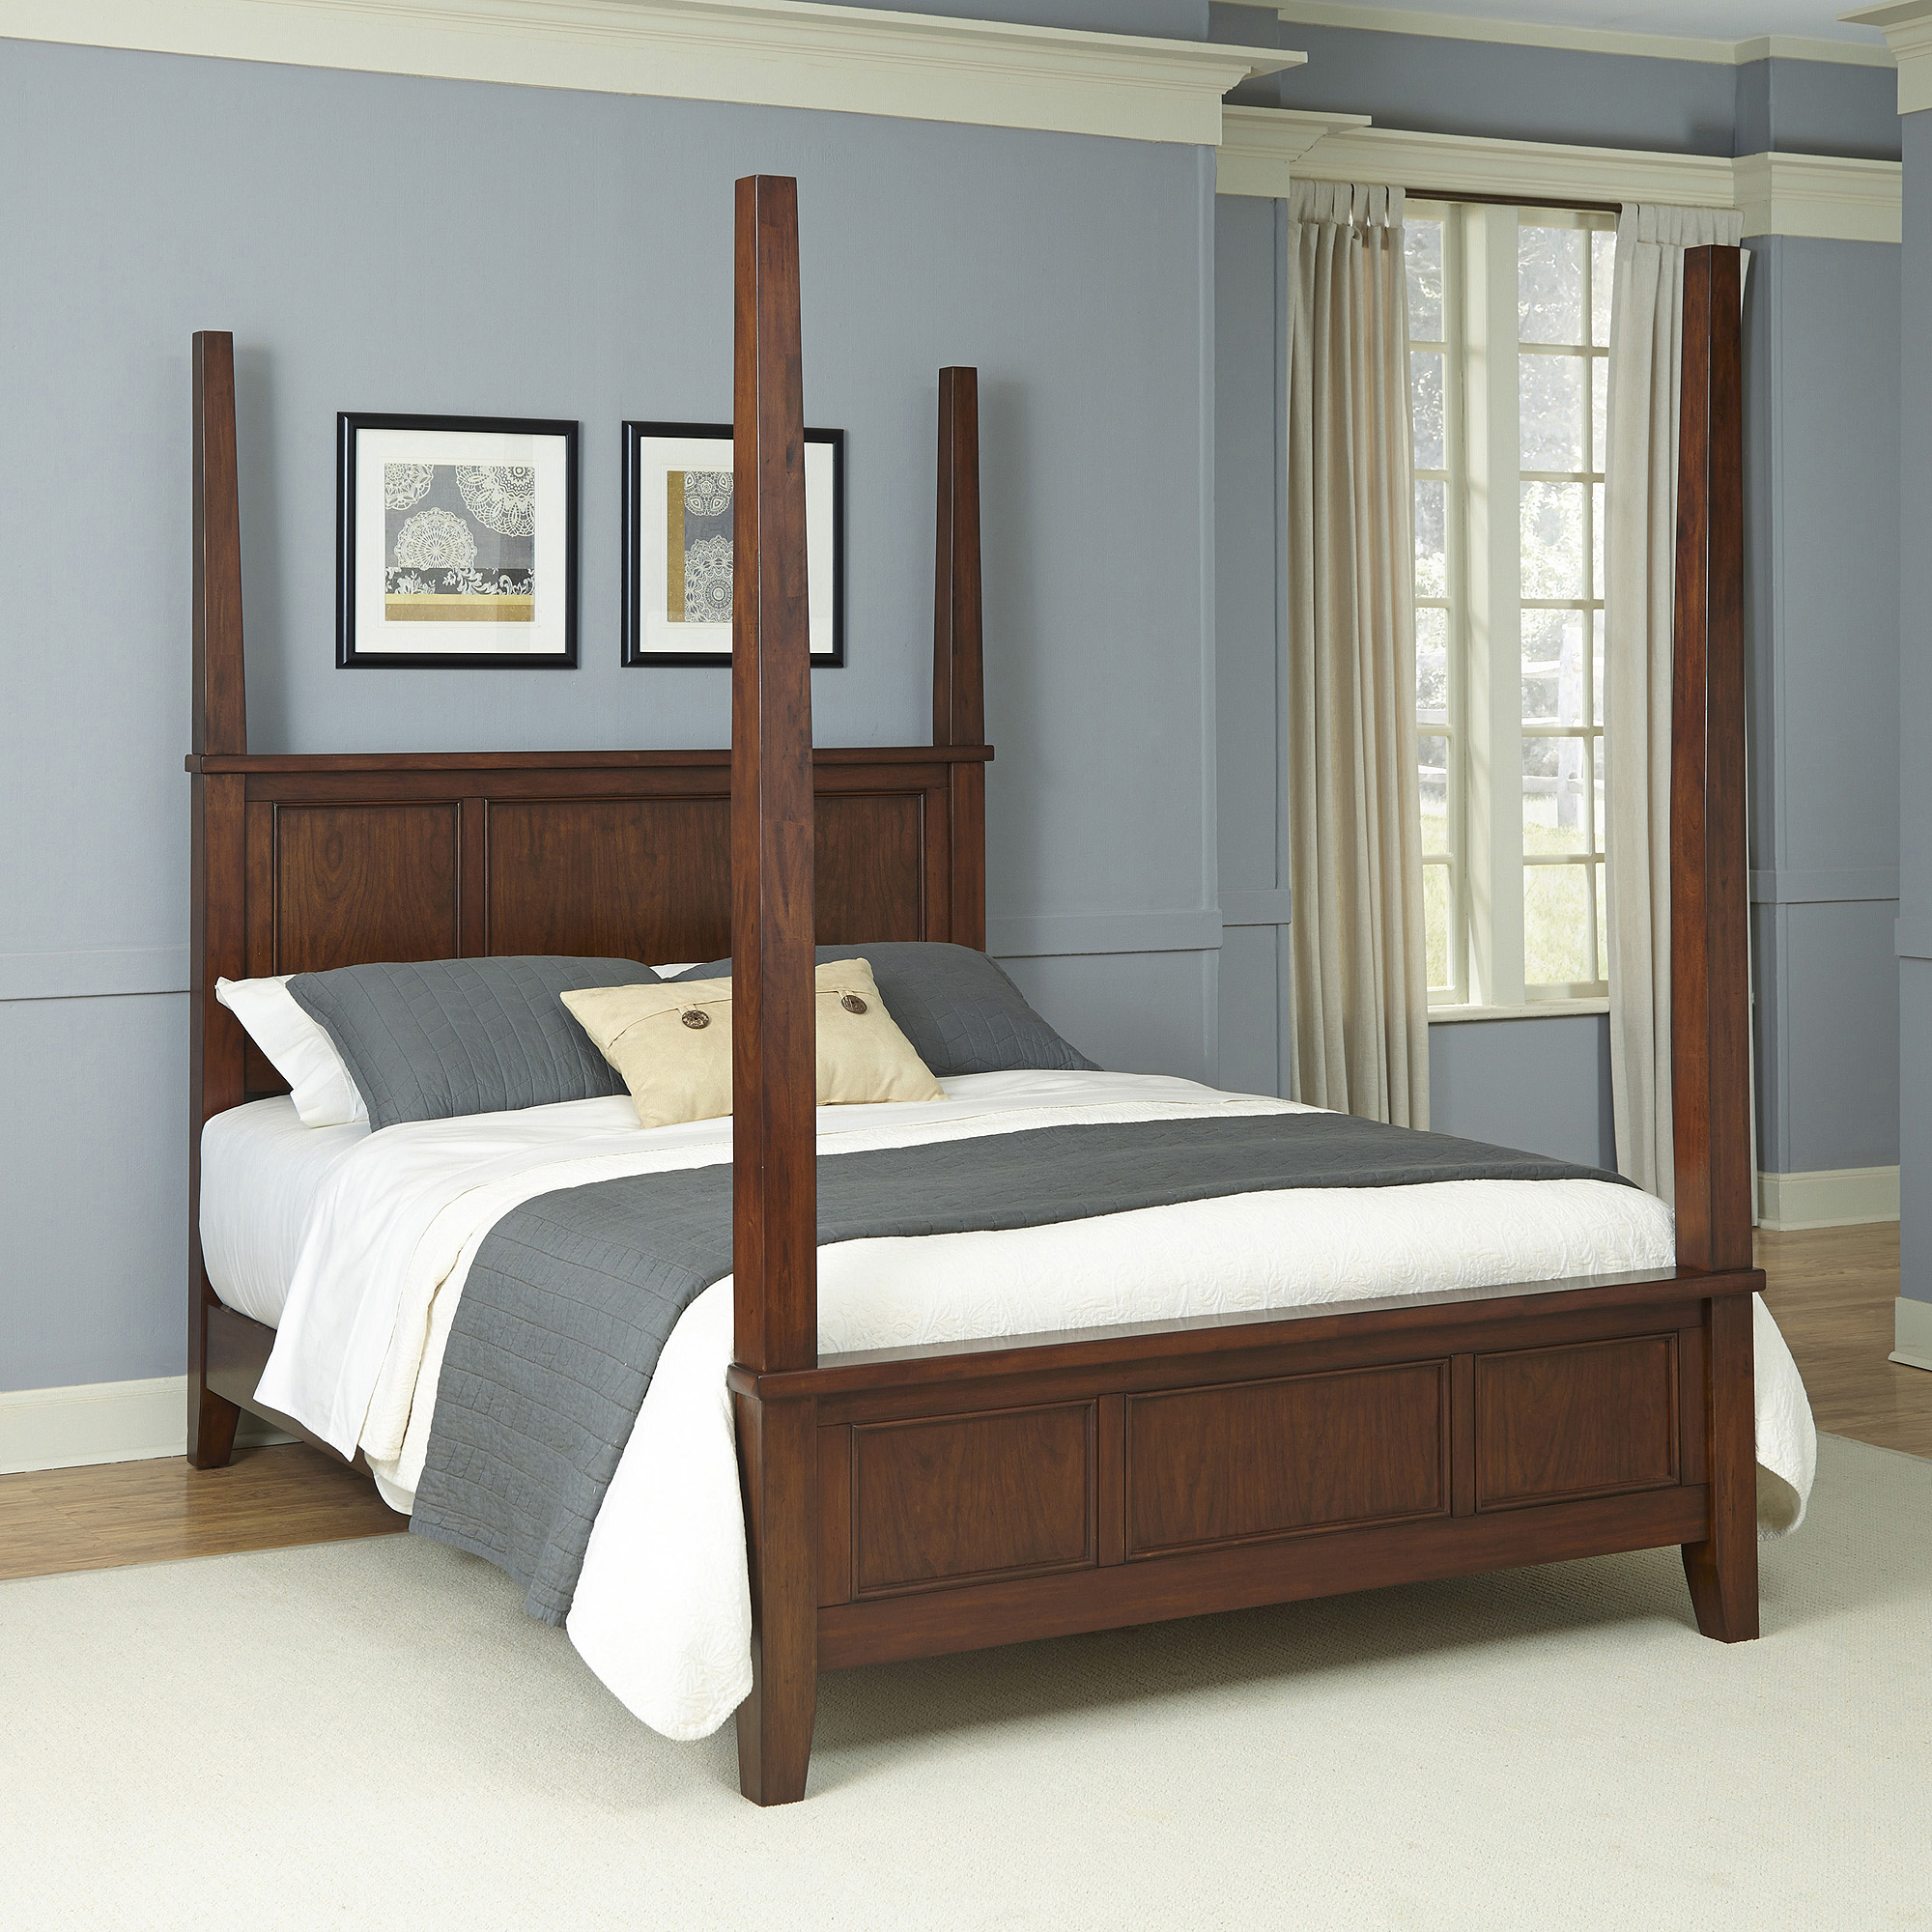 Home Styles 3-piece Chesapeake Media Dresser and Poster Bedroom Set, Brown